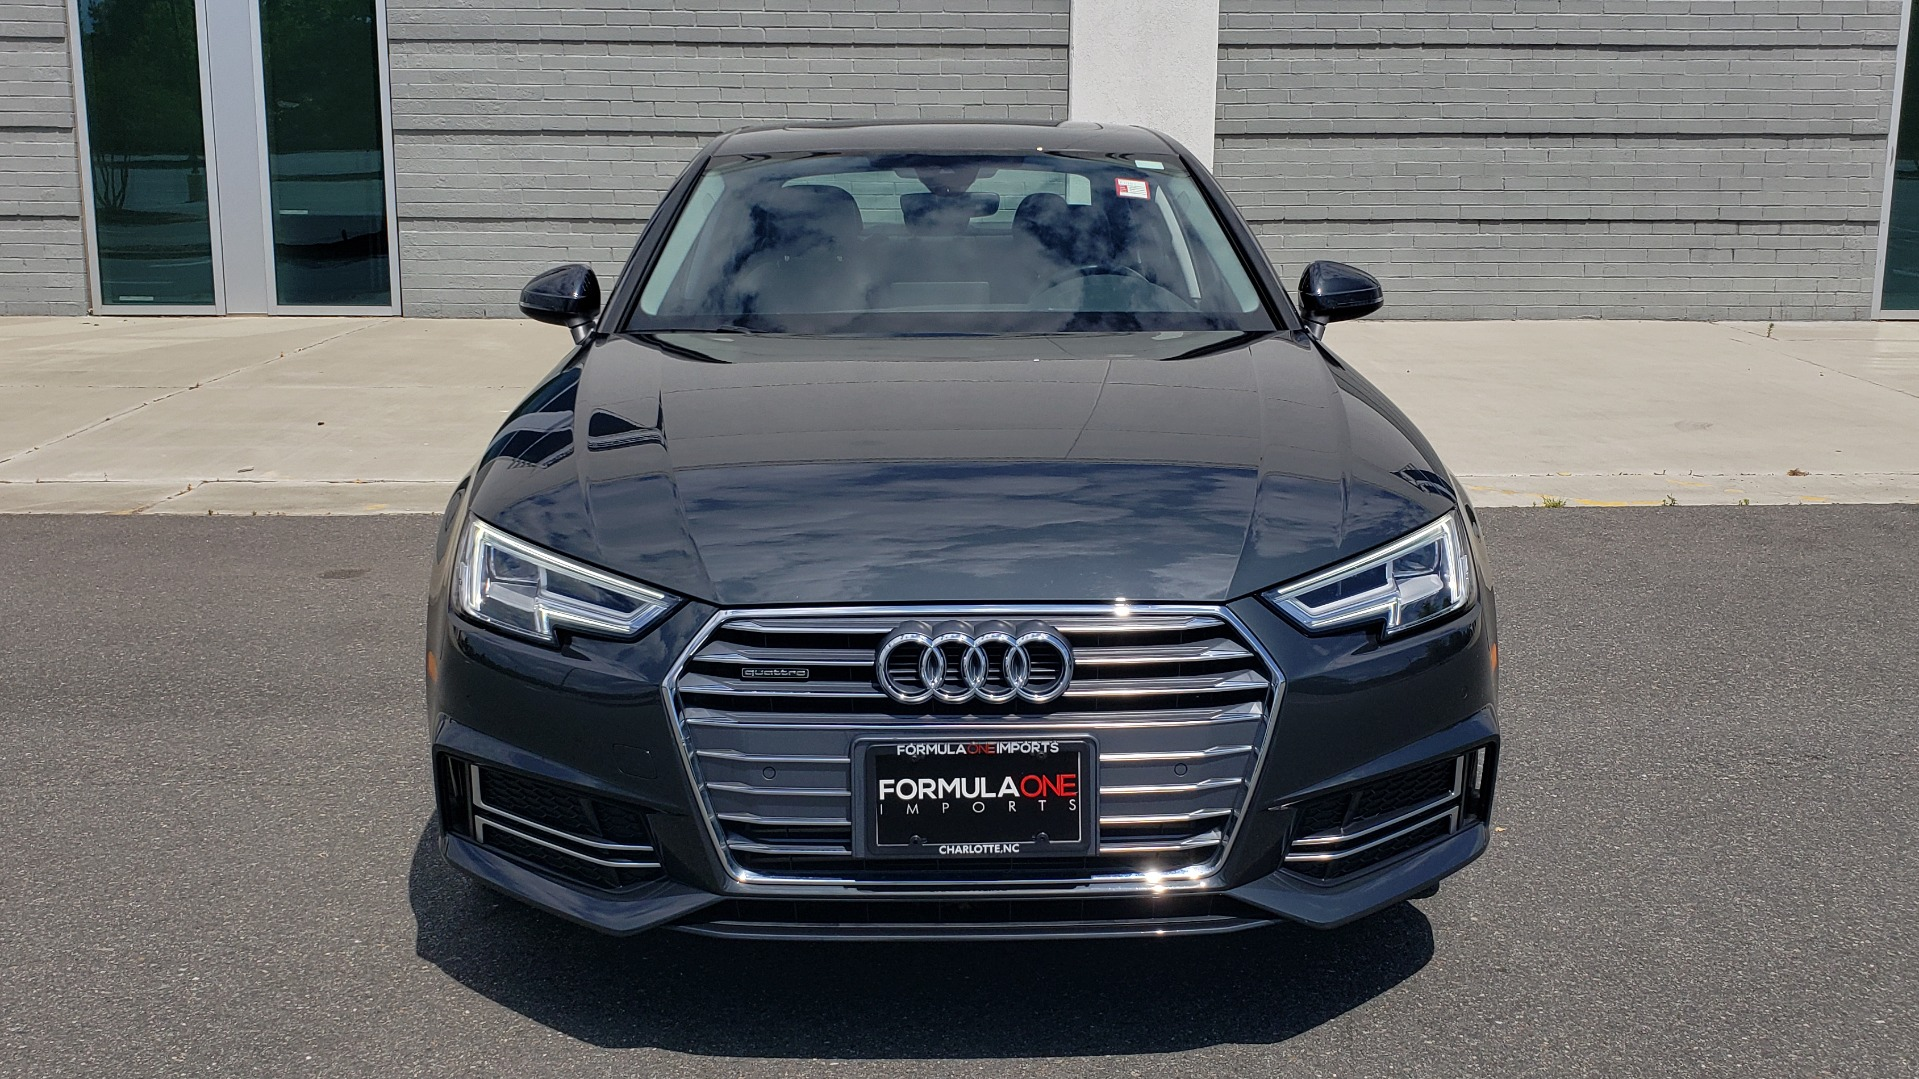 Used 2018 Audi A4 TECH PREMIUM PLUS / NAV / B&O SND / SUNROOF / CLD WTHR / REARVIEW for sale $28,595 at Formula Imports in Charlotte NC 28227 20